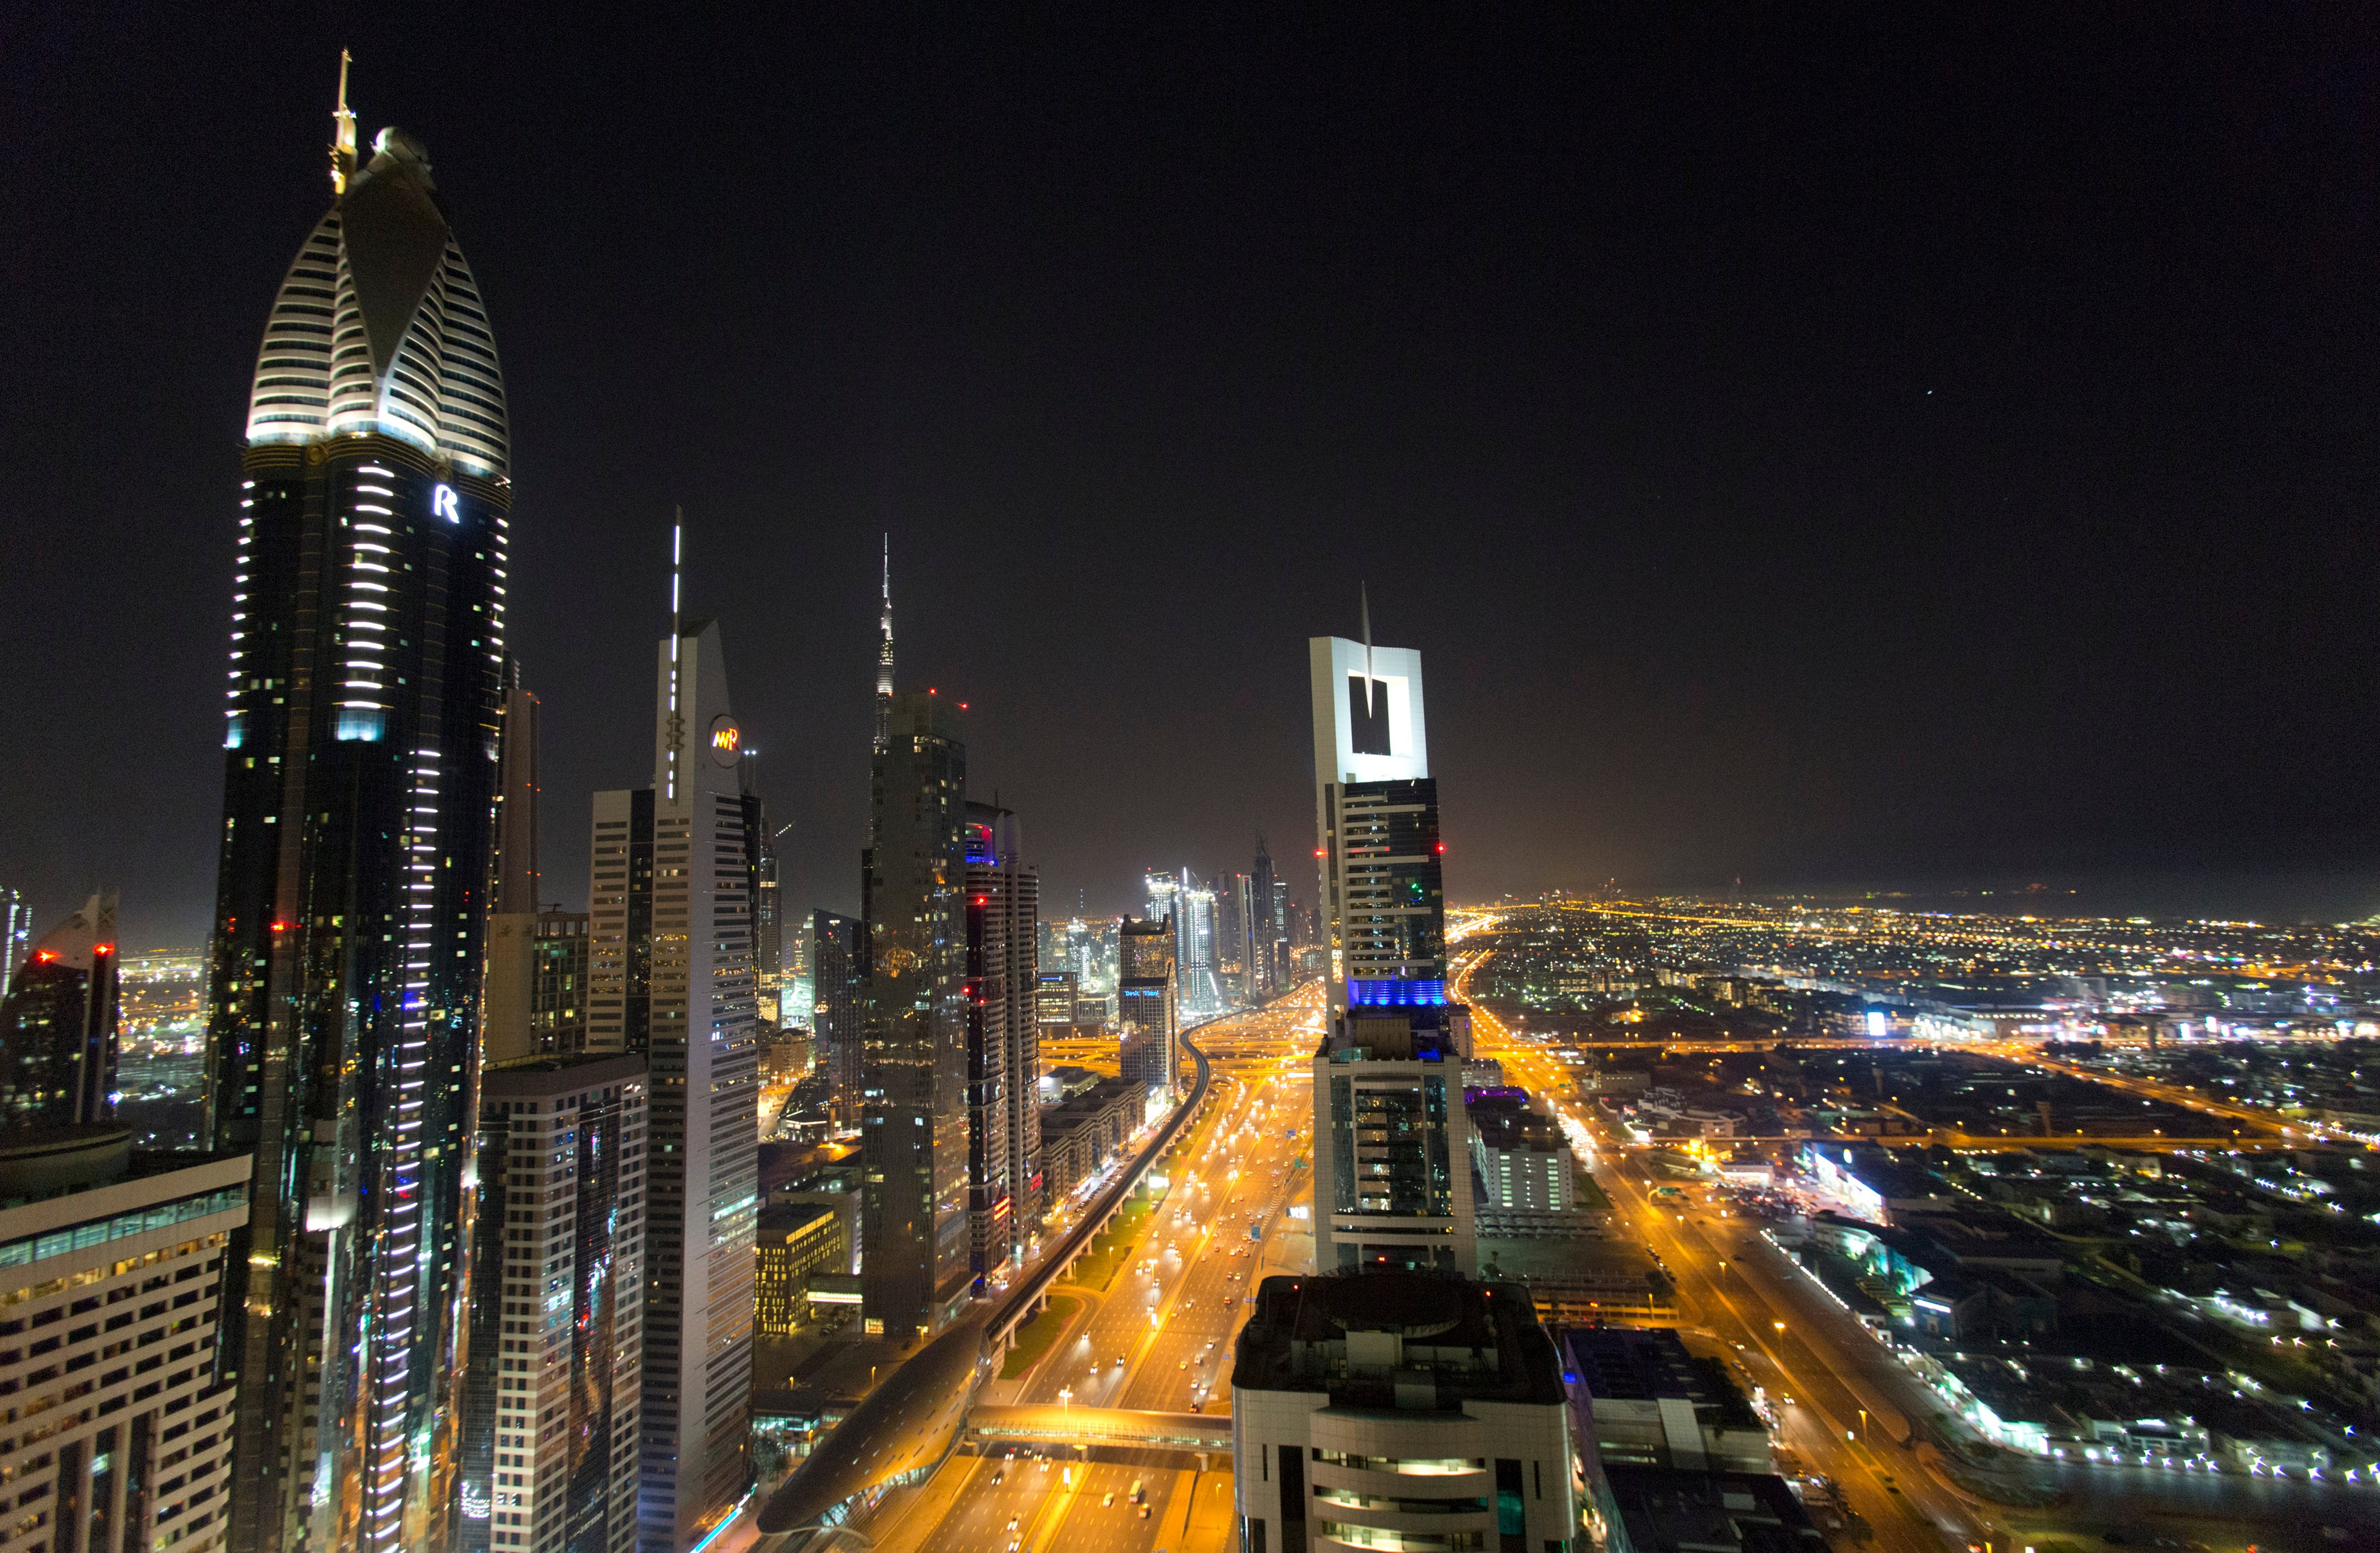 Dubai Police Arrest Group of Women for Nude Photoshoot